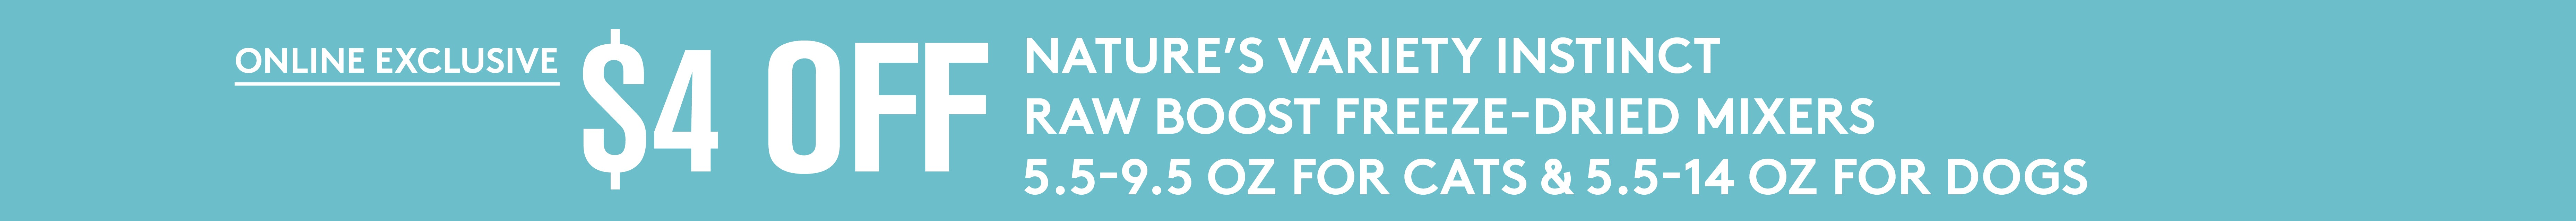 $4 Off Nature's Variety 5.5oz - 9.5oz Raw Boost Freeze Dried Mixers for Cats & 5.5oz - 14 oz Raw Boost Freeze Dried Mixers for Dogs